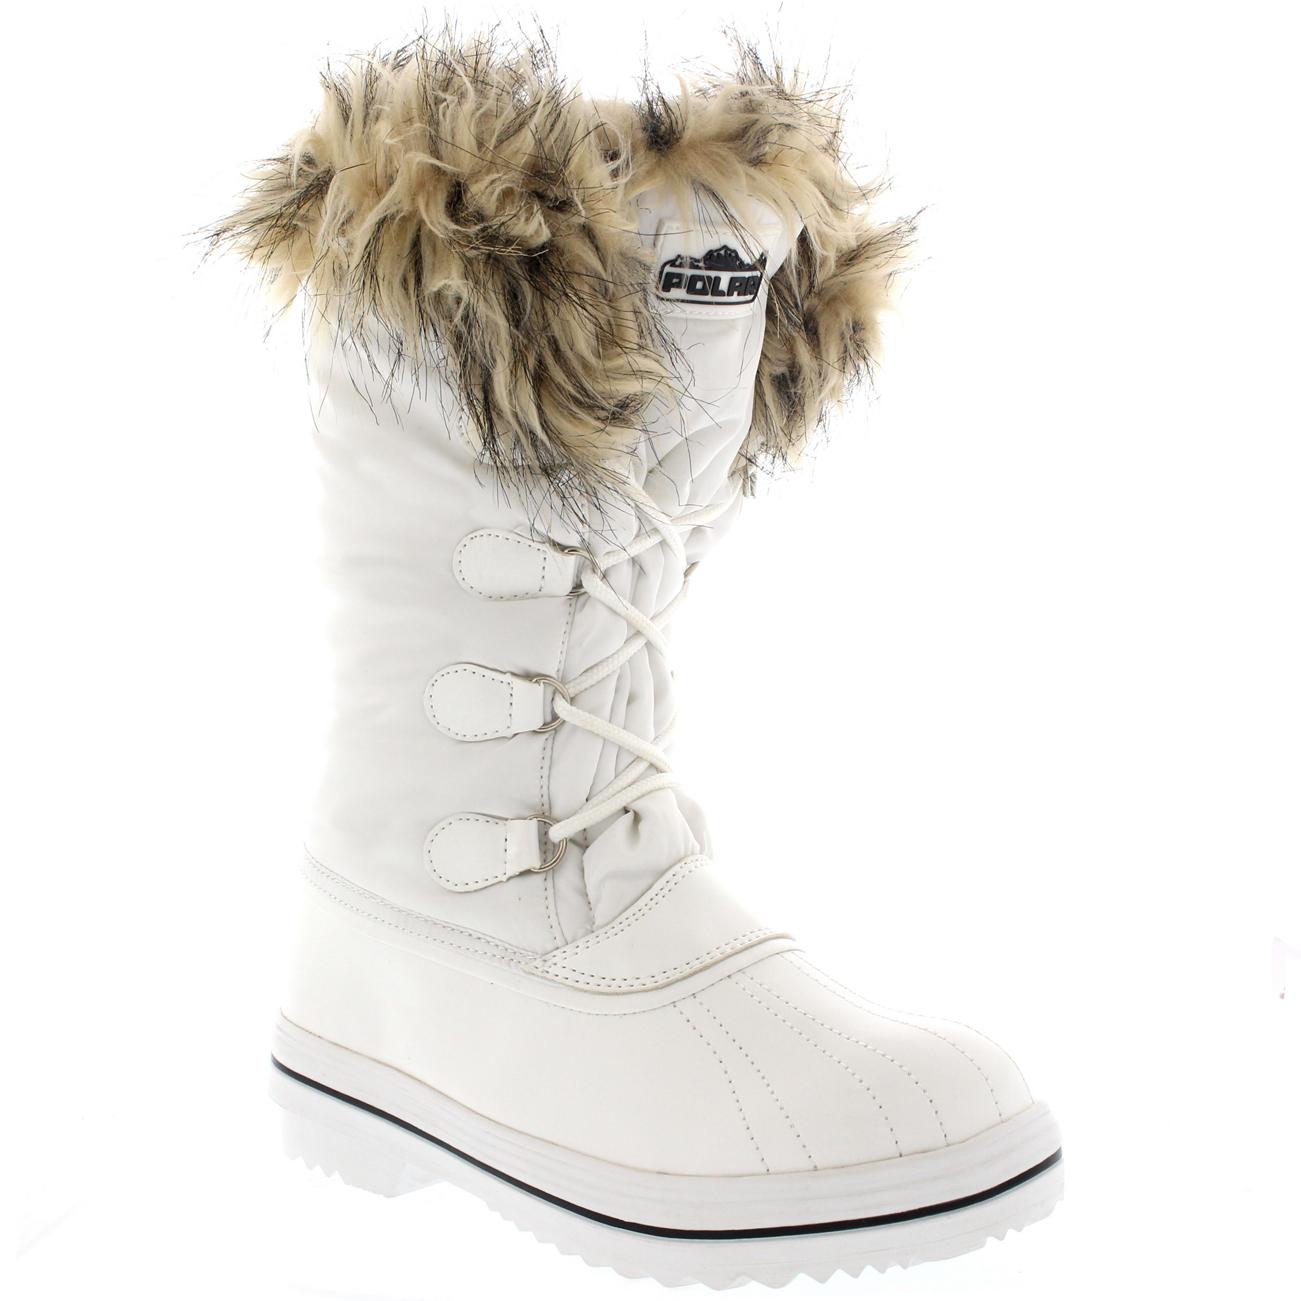 Womens Nylon Warm Fur Trim Duck Snow Waterproof Outdoor Tall Winter Rain Boots AS_9155